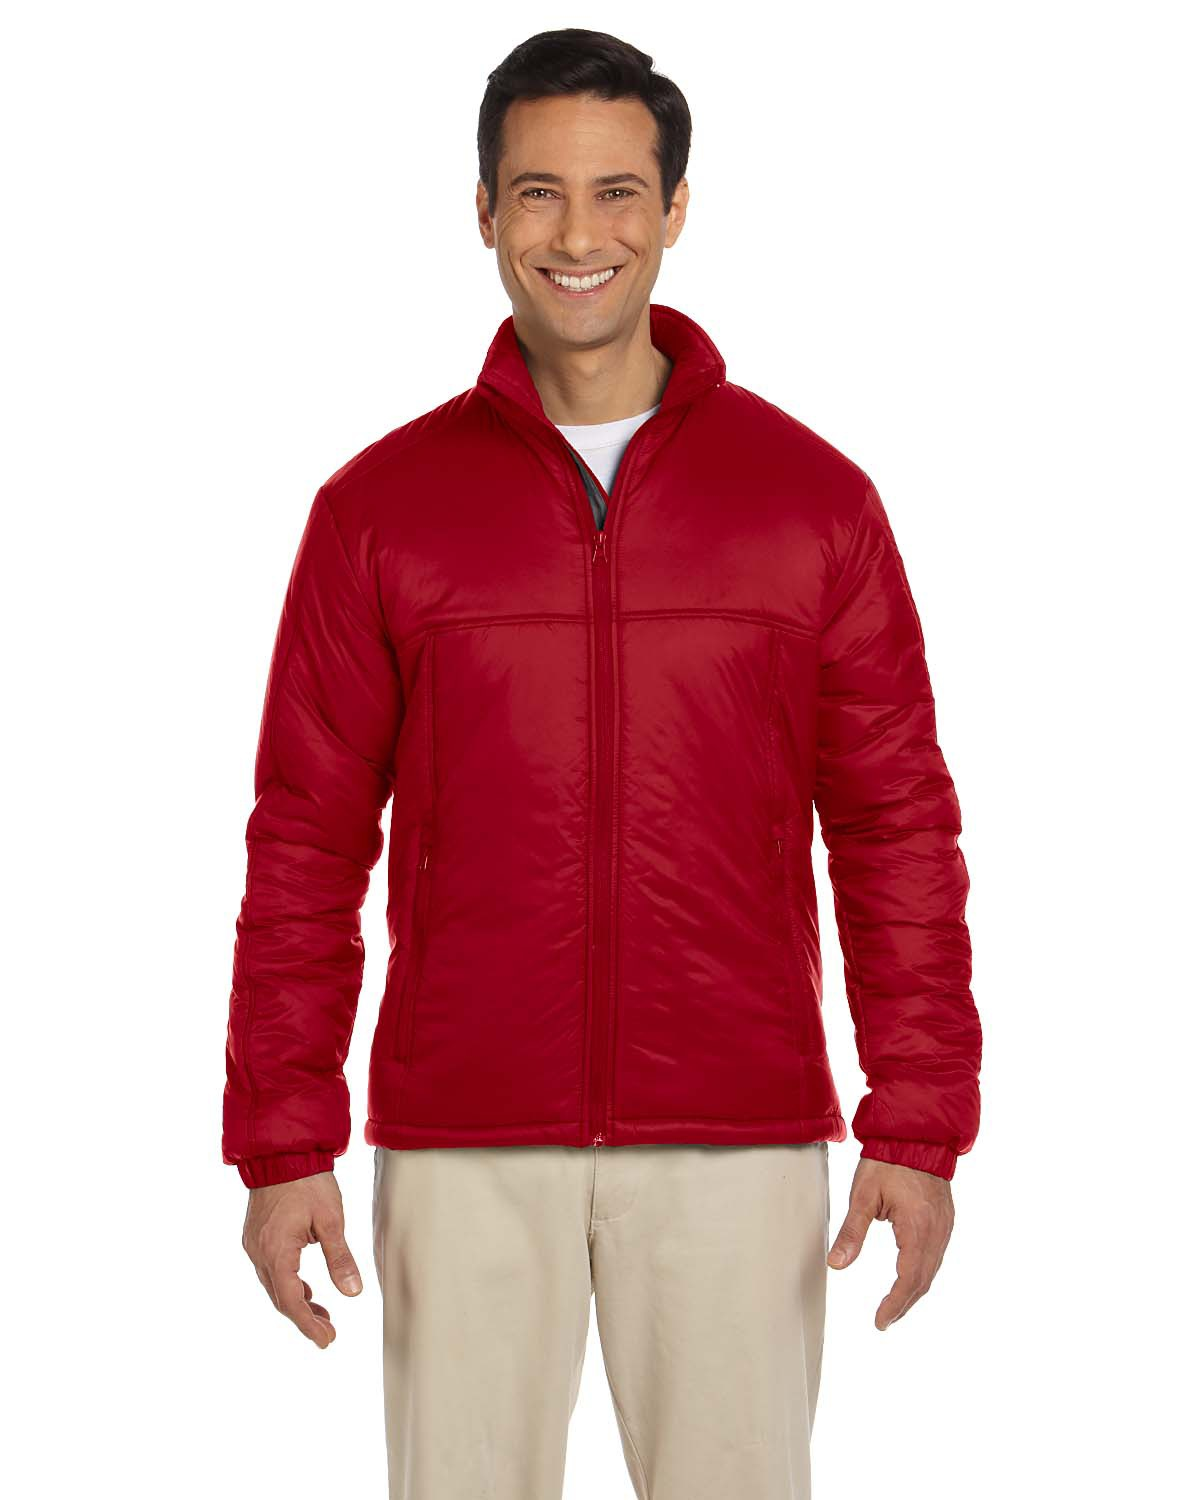 Harriton Men's Essential Polyfill Jacket (being discontinued)